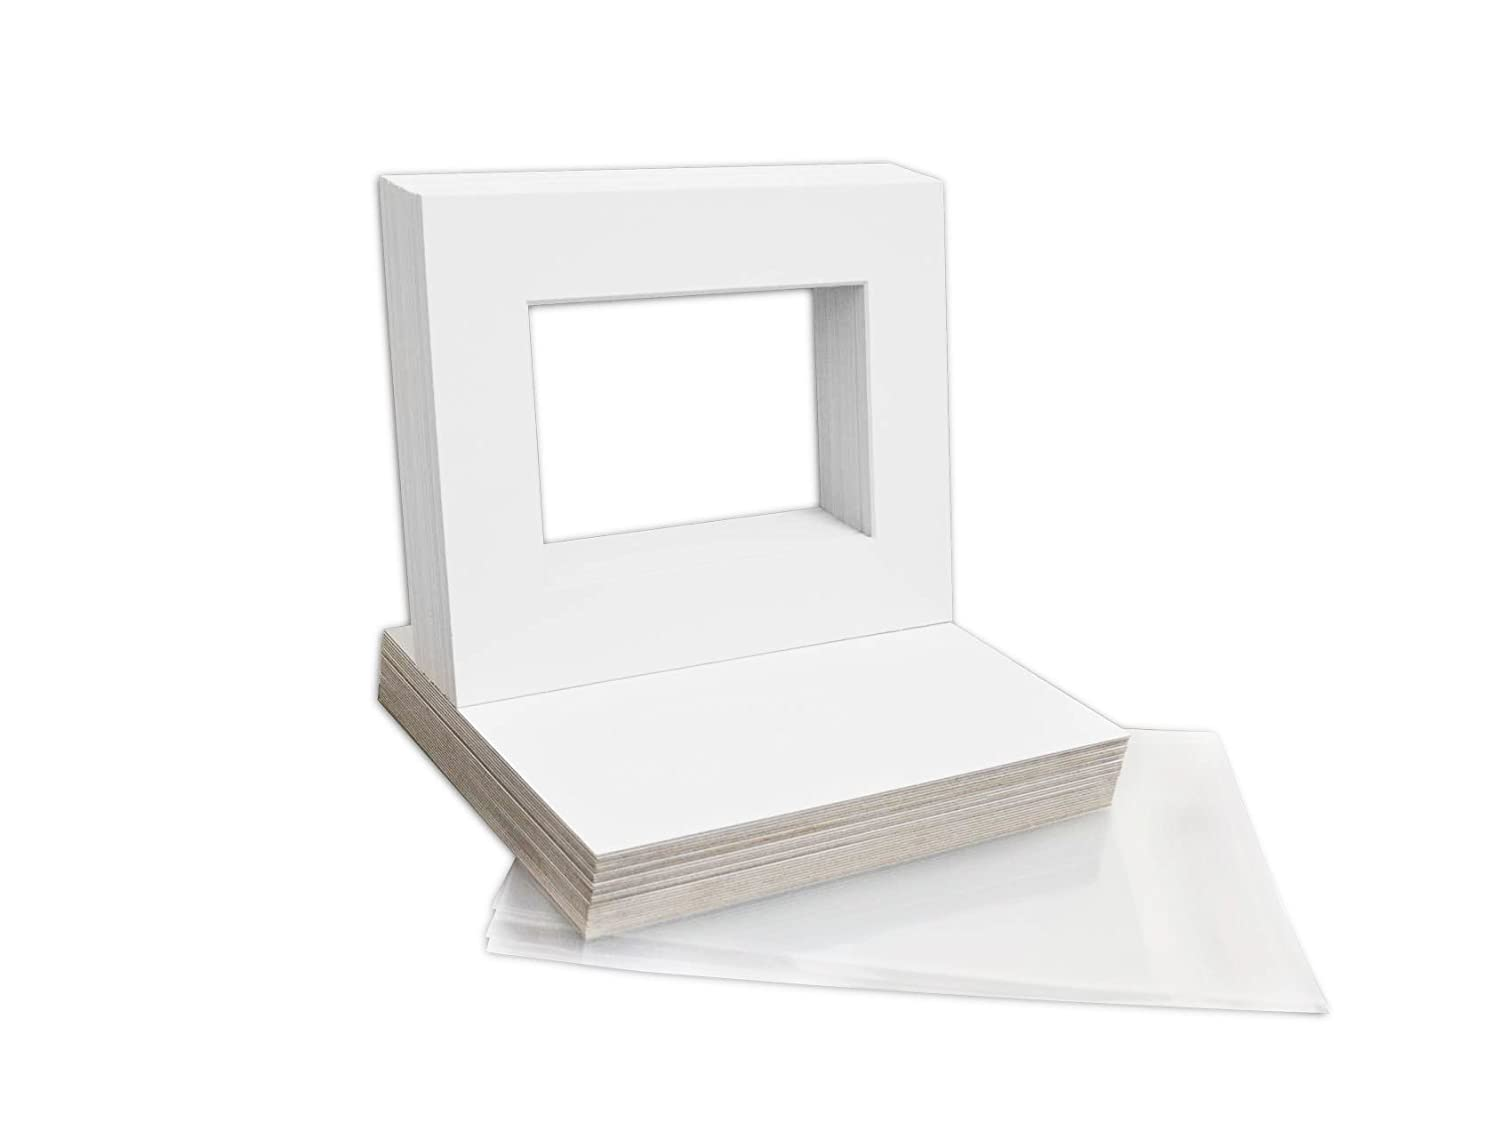 Black 8x10 Picture Mat Sets for 5x7 Photo Mat Board Center Includes a Pack of 50 White Core Bevel Pre-Cut White Core Matte /& 50 Backing Board /& 50 Clear Bags